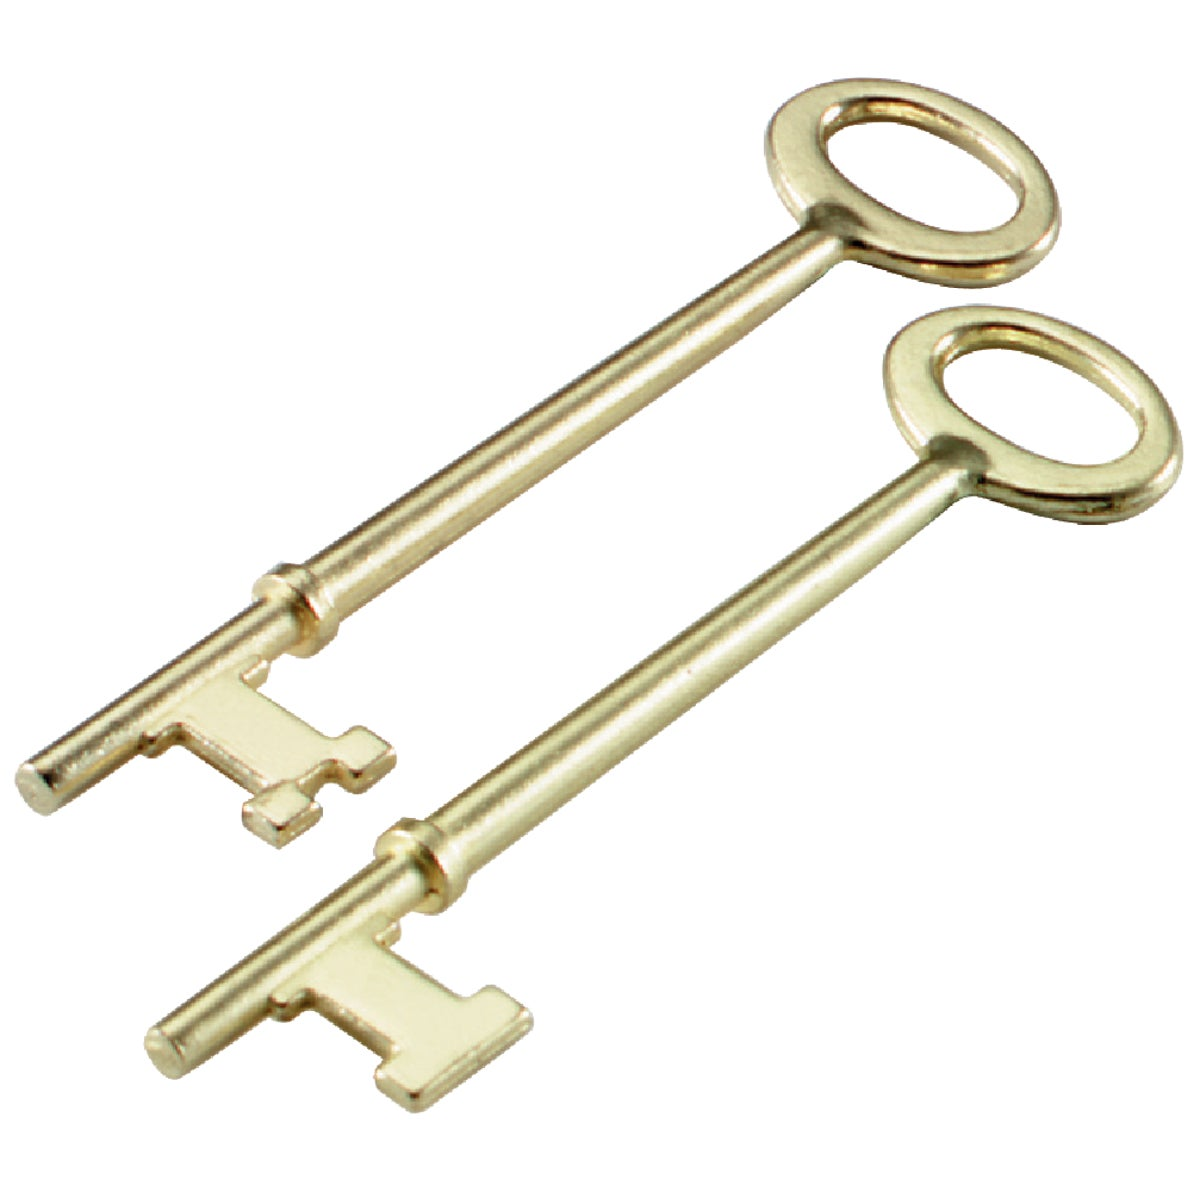 2PK SKELETON KEY